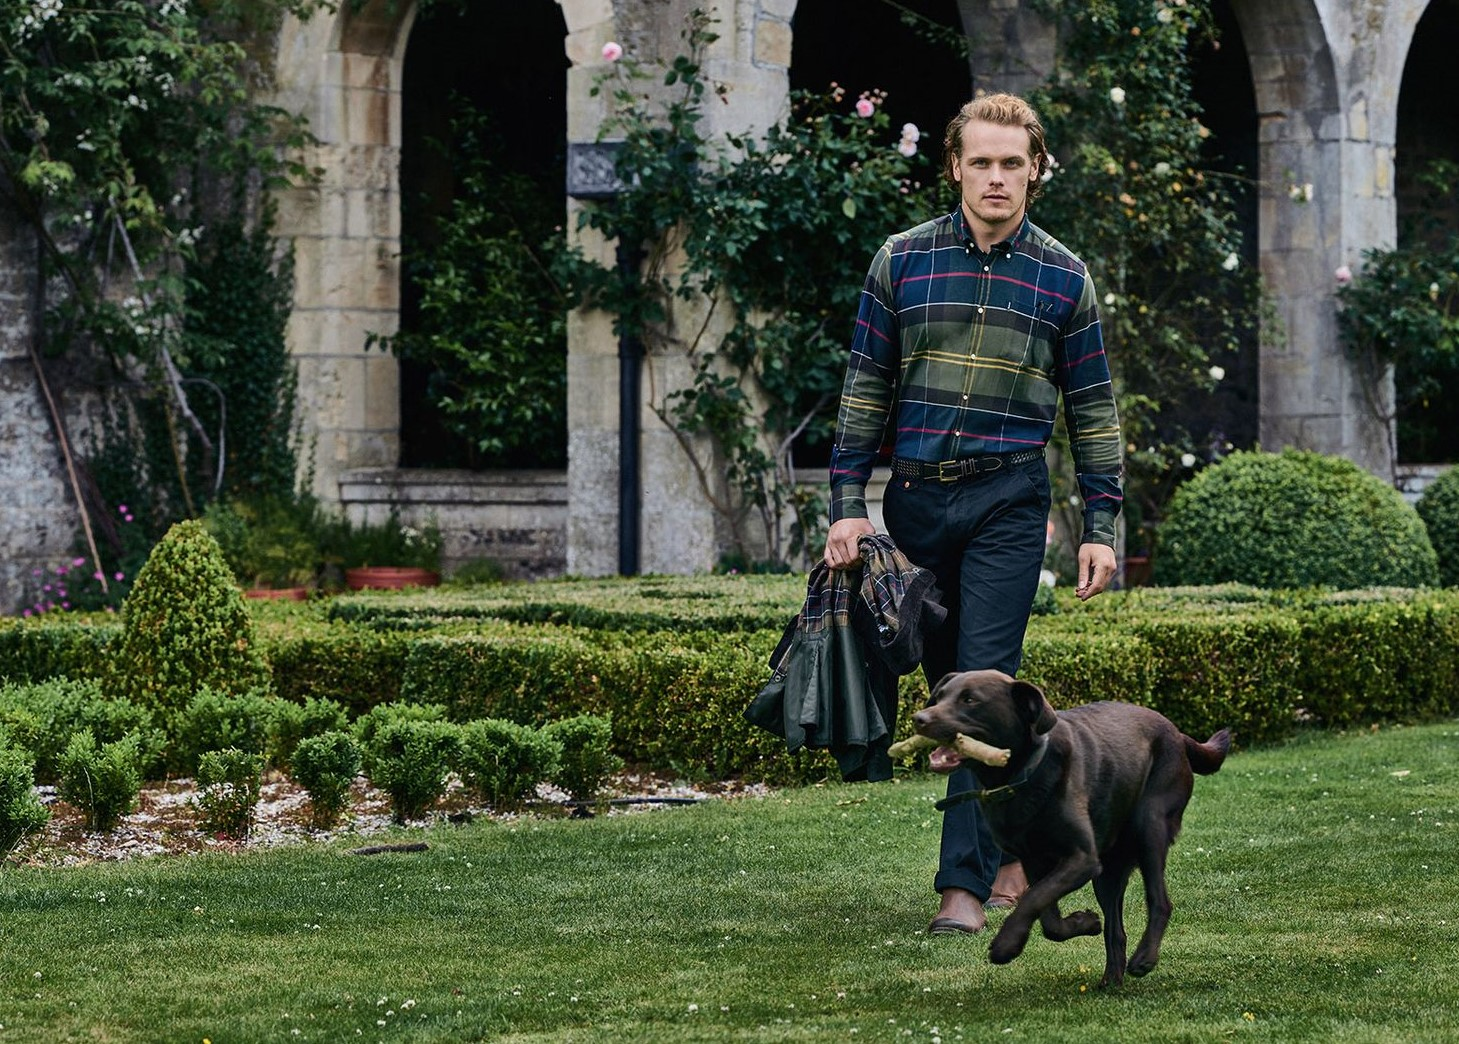 Barbour Sam Heughan wearing green tartan shirt with chocolate labrador